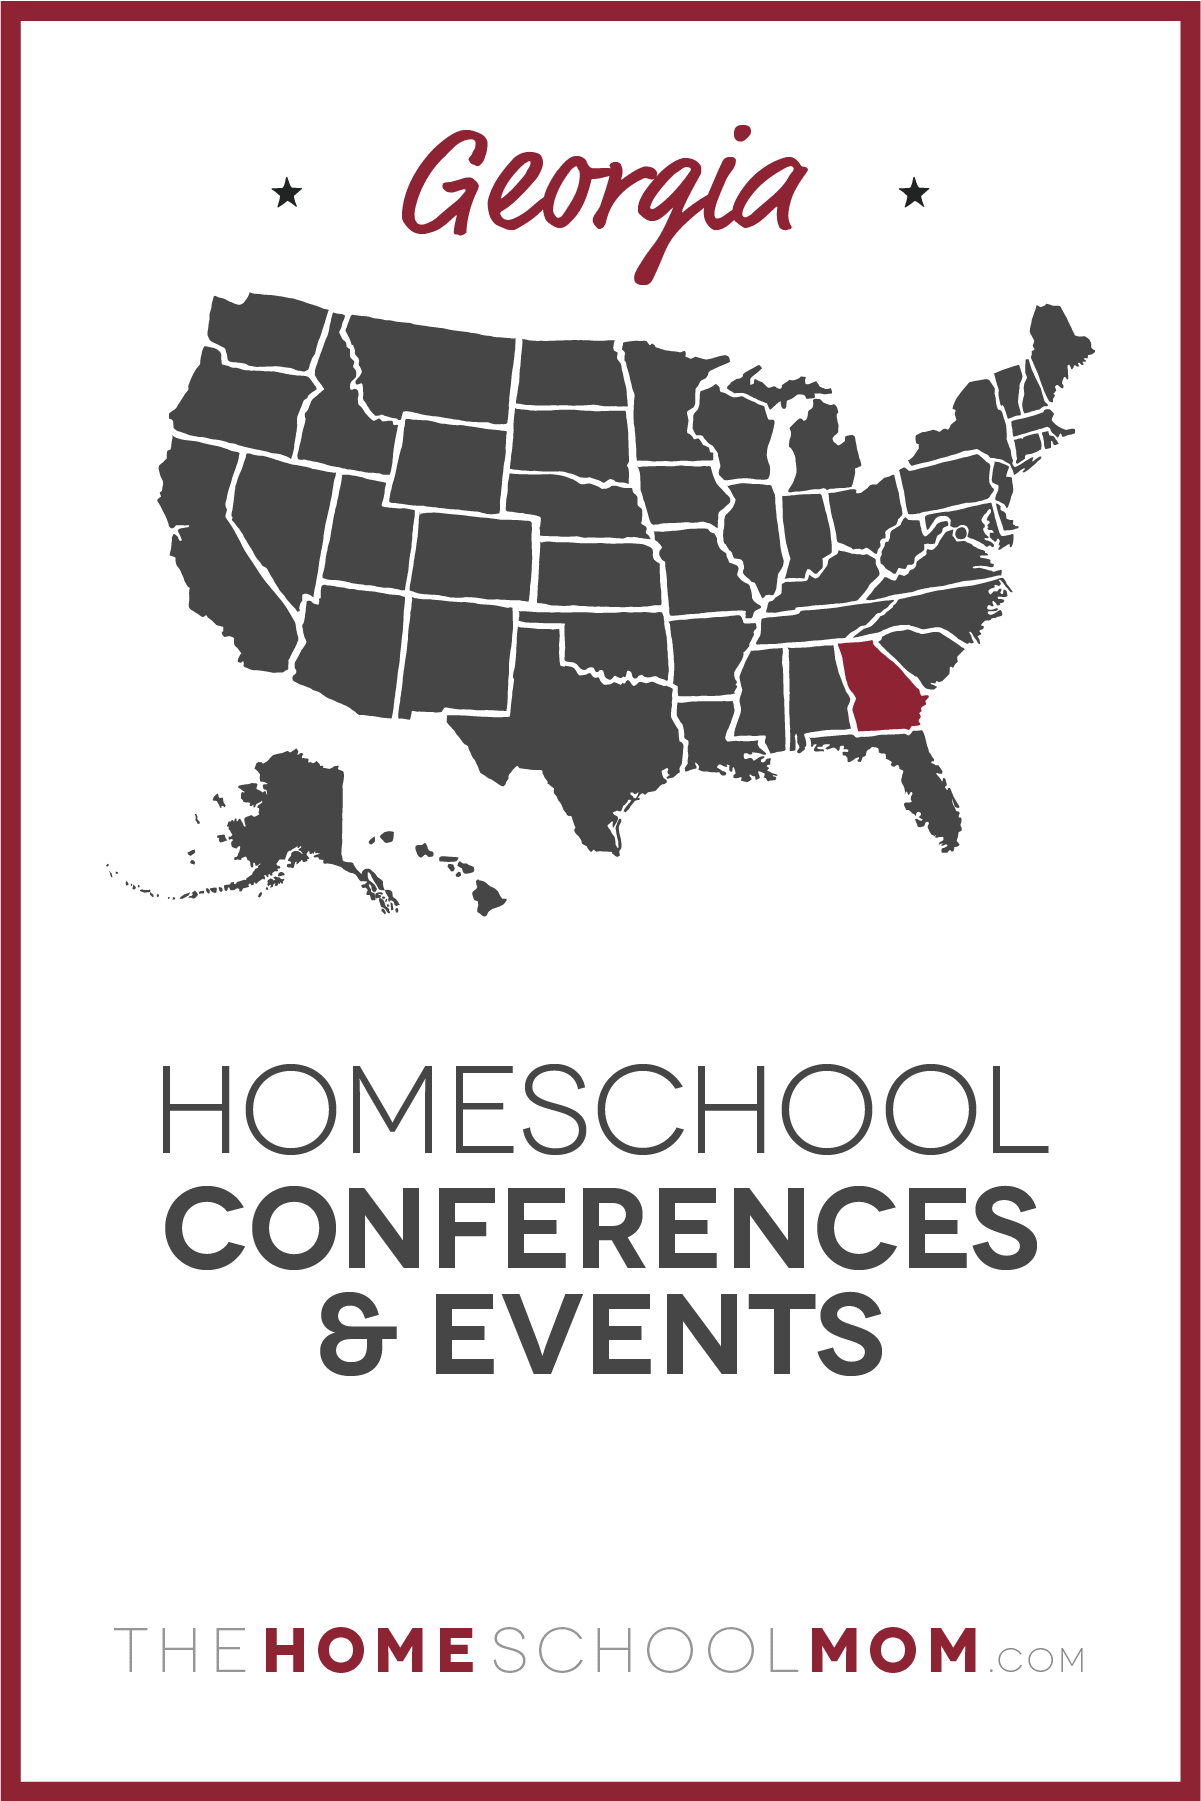 Map of US with Georgia highlighted in red and text Georgia Homeschool Conferences & Events – TheHomeSchoolMom.com